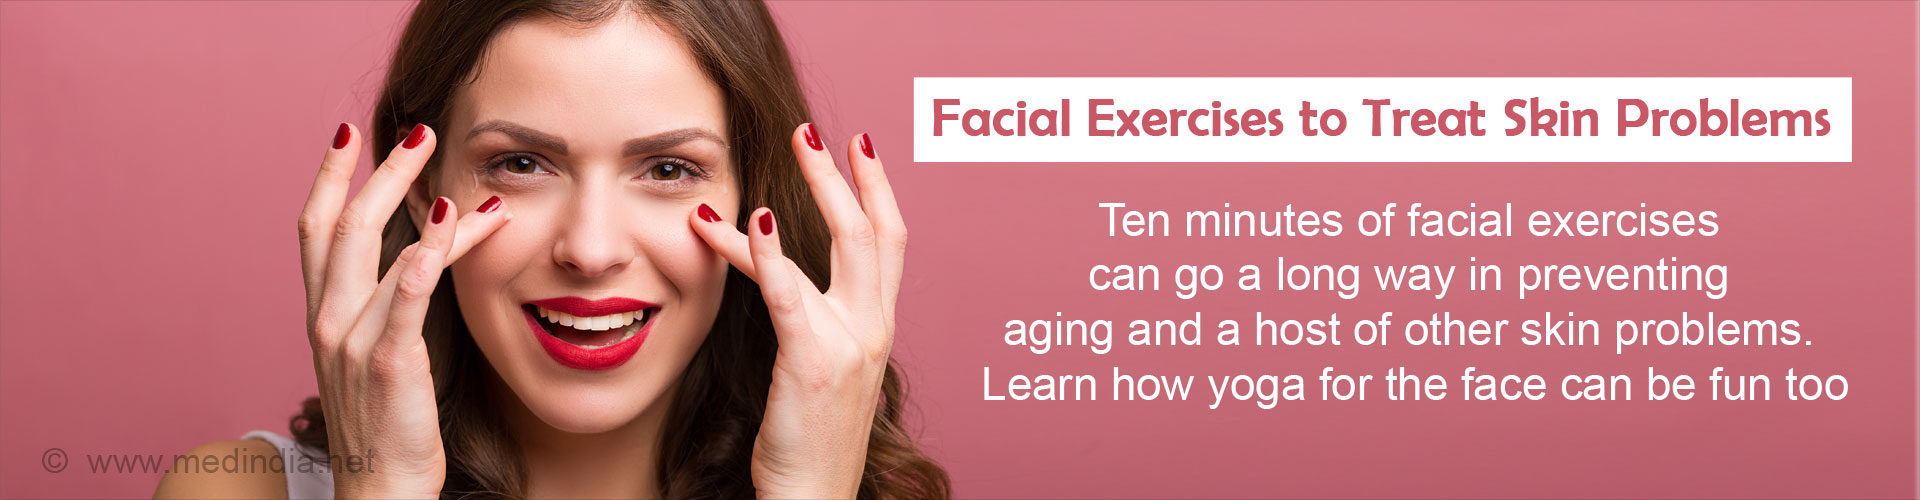 Facial exercises to treat skin problems Ten minutes of facial exercises can go a long way in preventing aging and a host of other skin problems. Learn how yoga for the face can be fun too